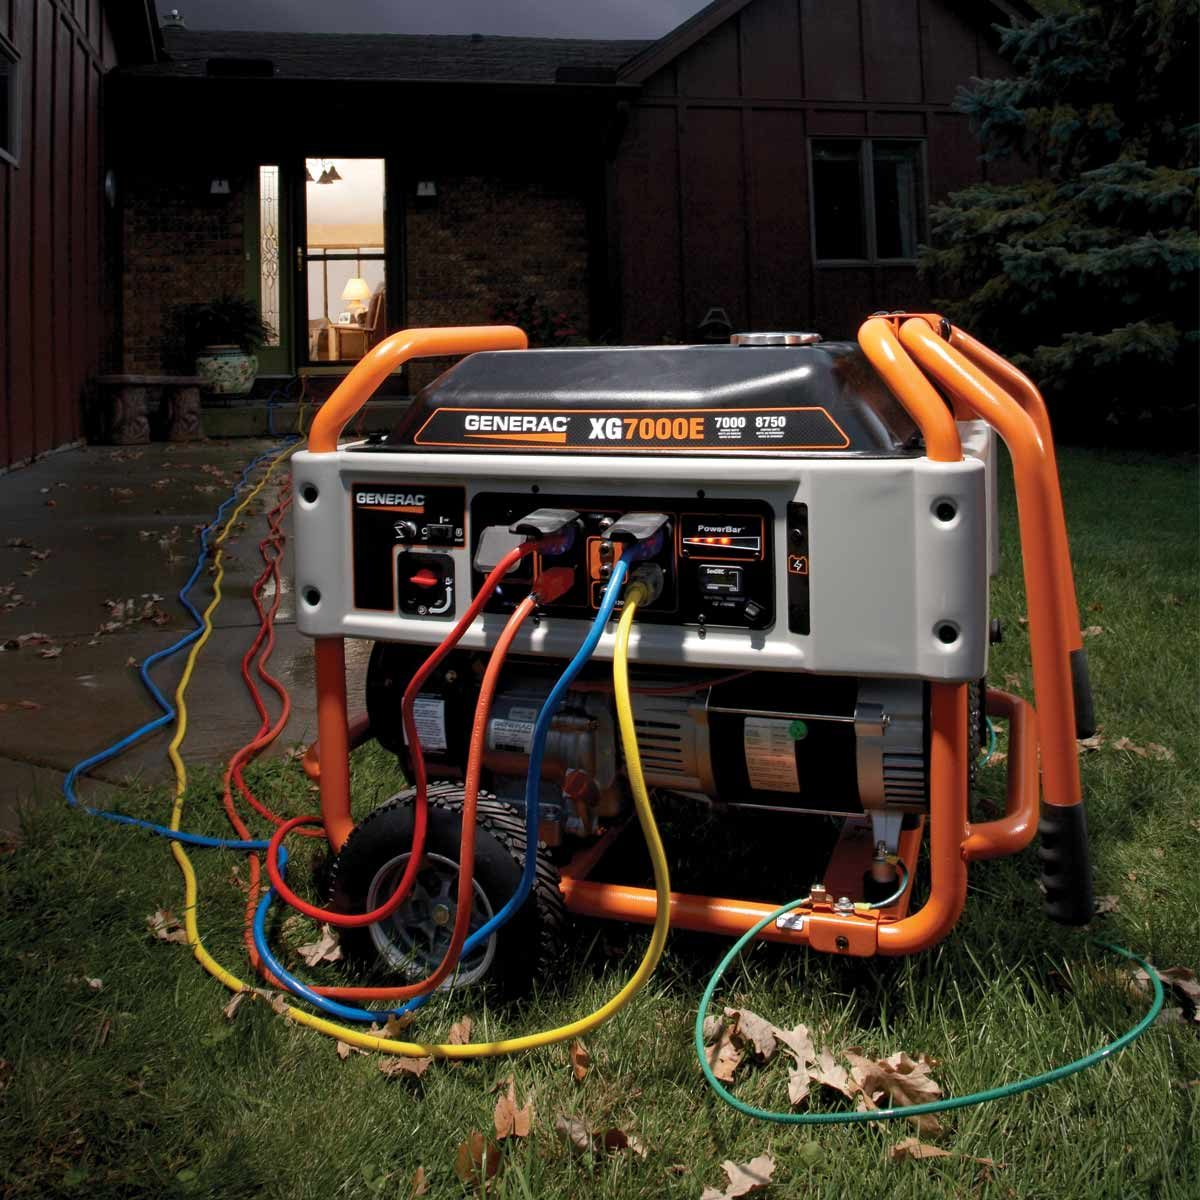 Wiring Diagram Unplug All Loads From The Generator Switch The Ac